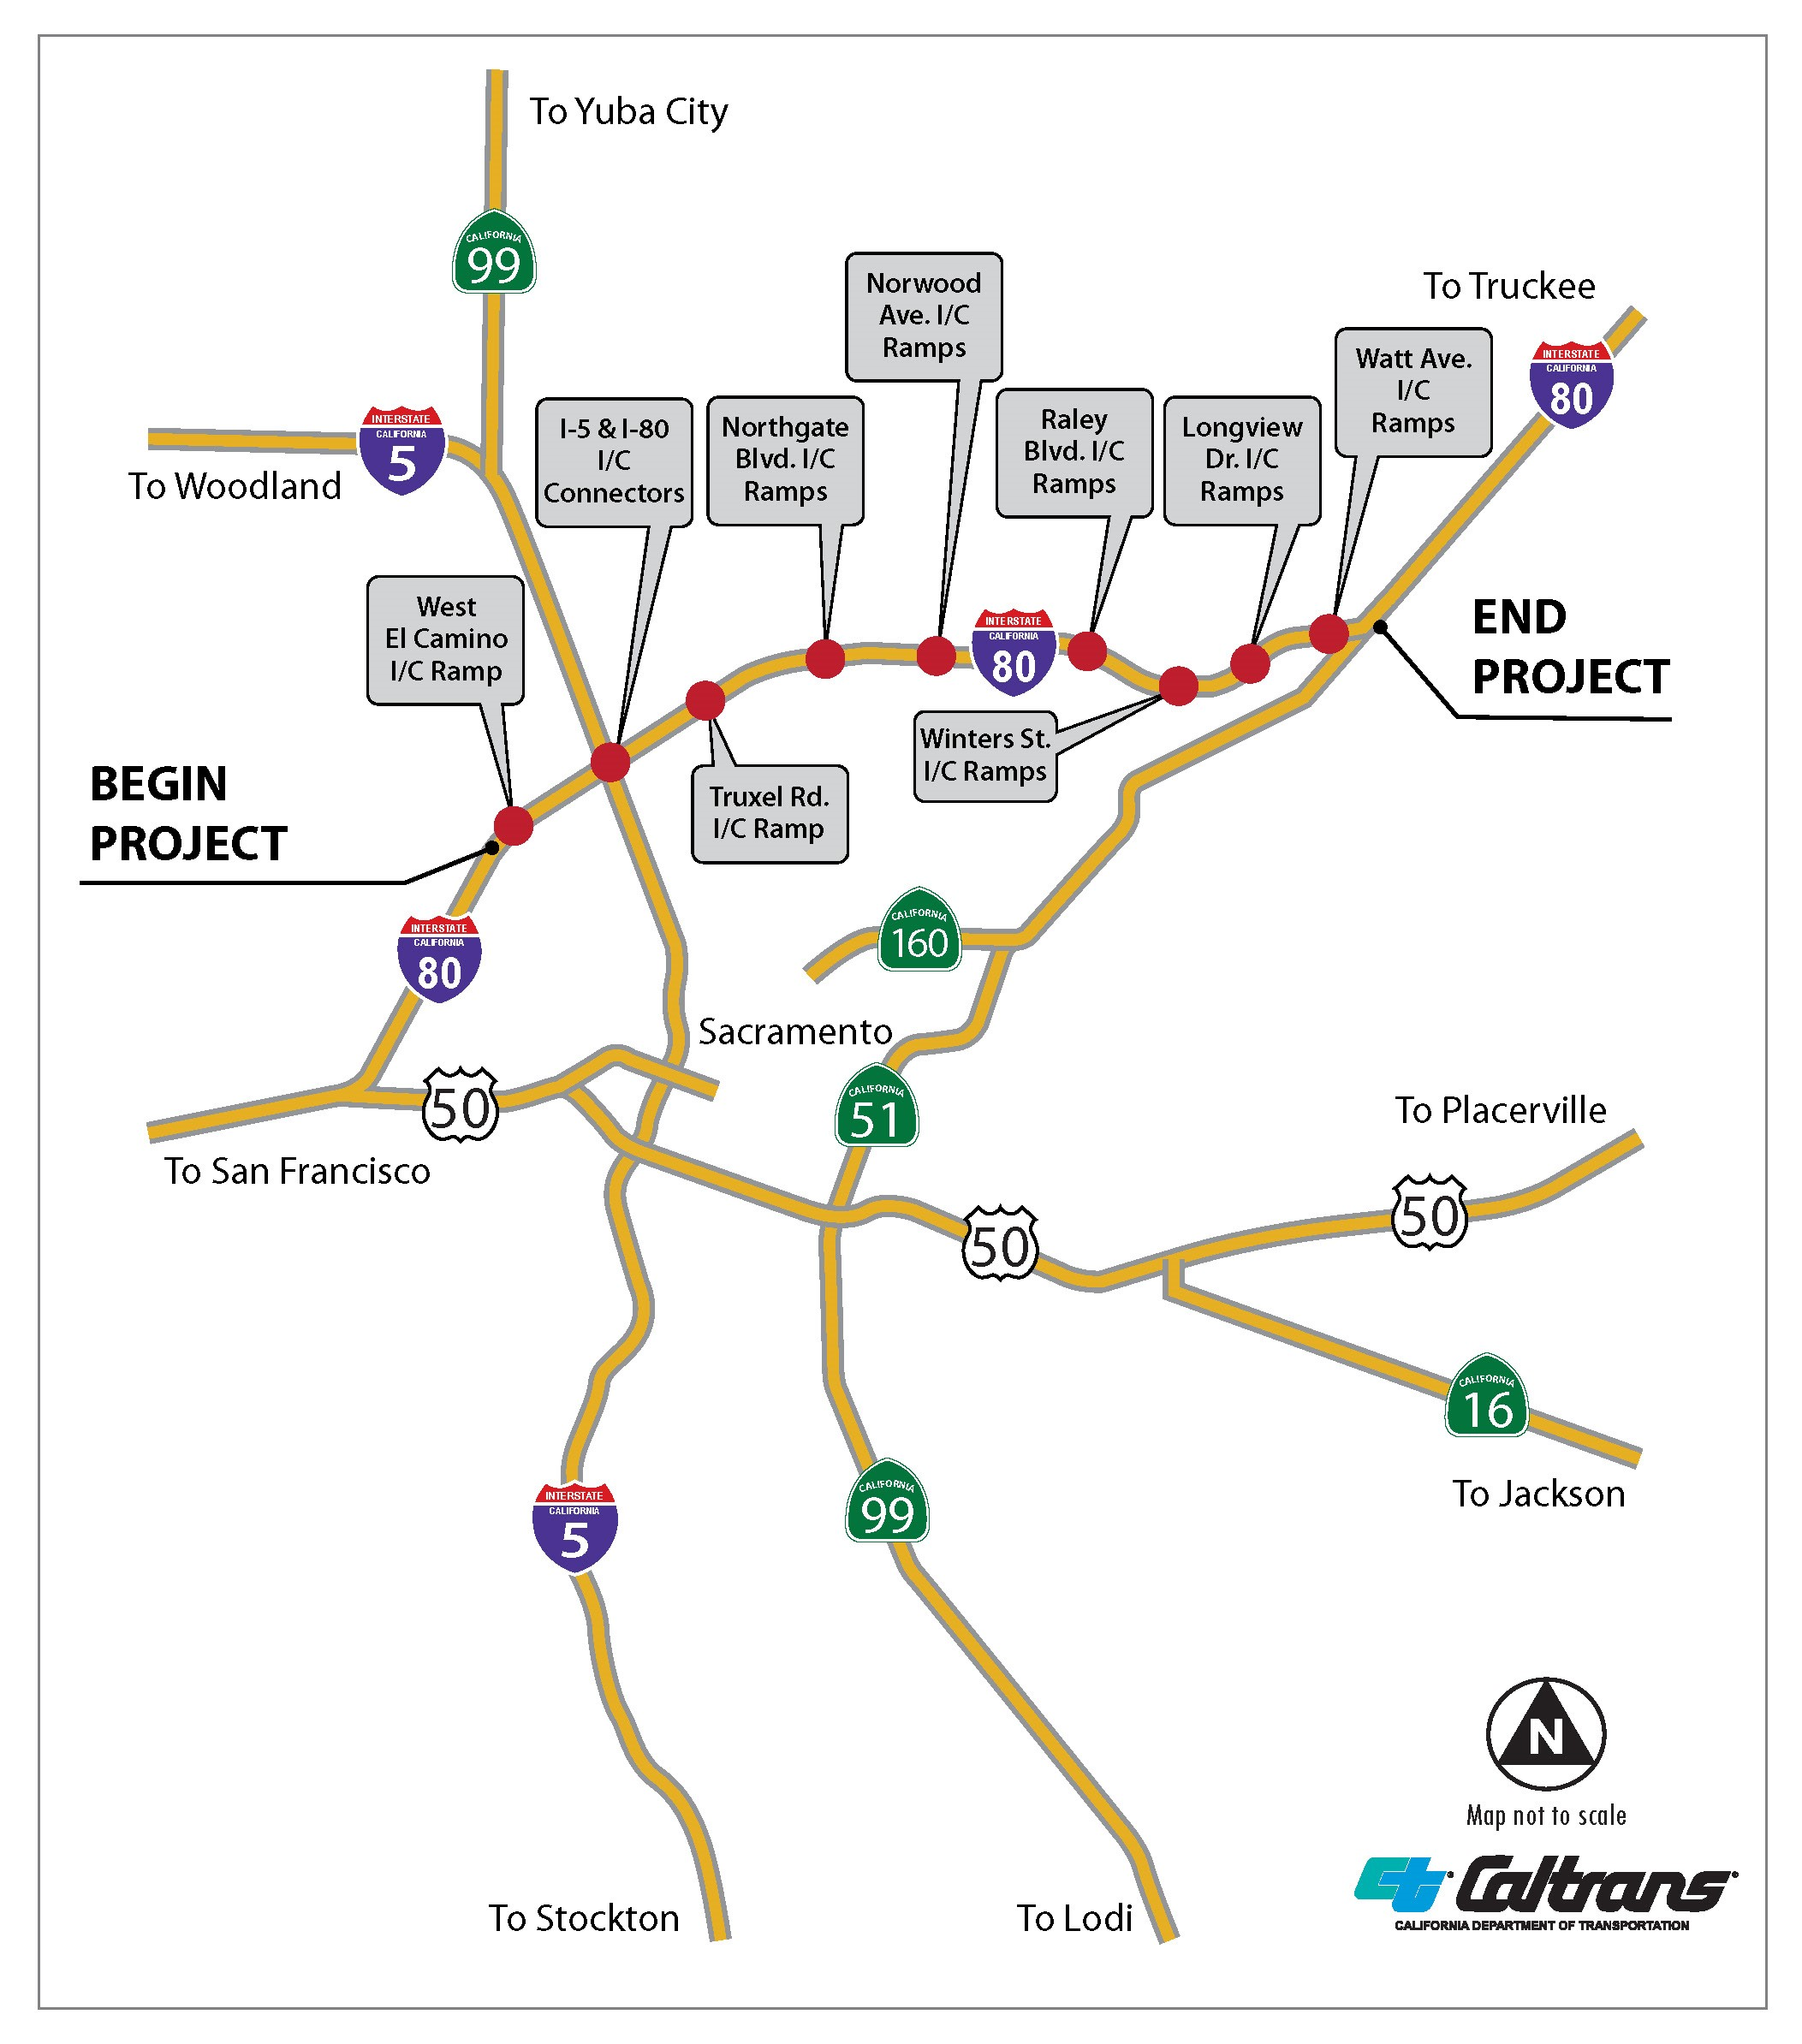 I-80 Ramps Scheduled for Extended Weekend Closure | Caltrans